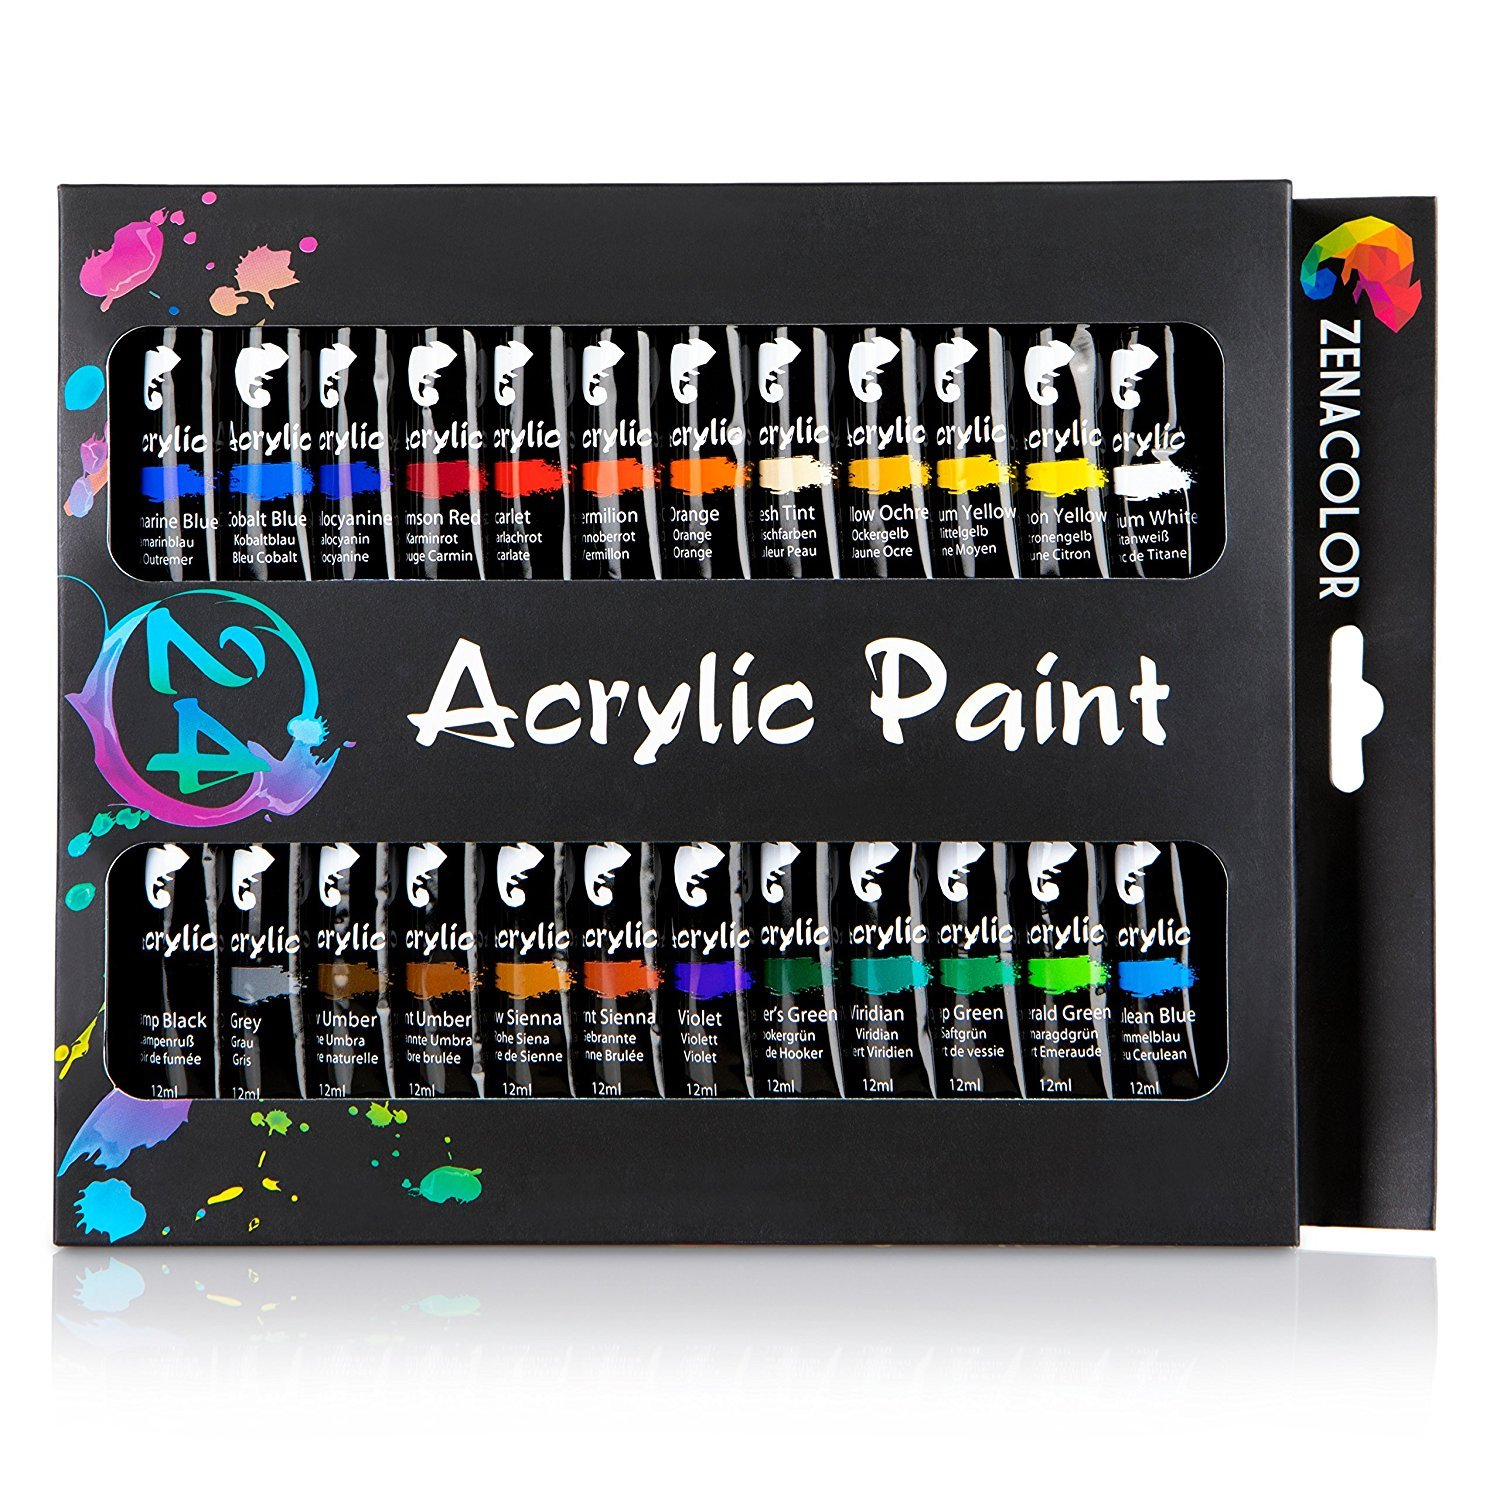 24-tube acrylic paint set by Zenacolor – pack of 24 x 12ml paint tubes - High-quality non-toxic painting - 24 unique and different colors - Perfect for beginners and professionals alike - Dense pigments and fast drying – Can easily be used on canvas, wood